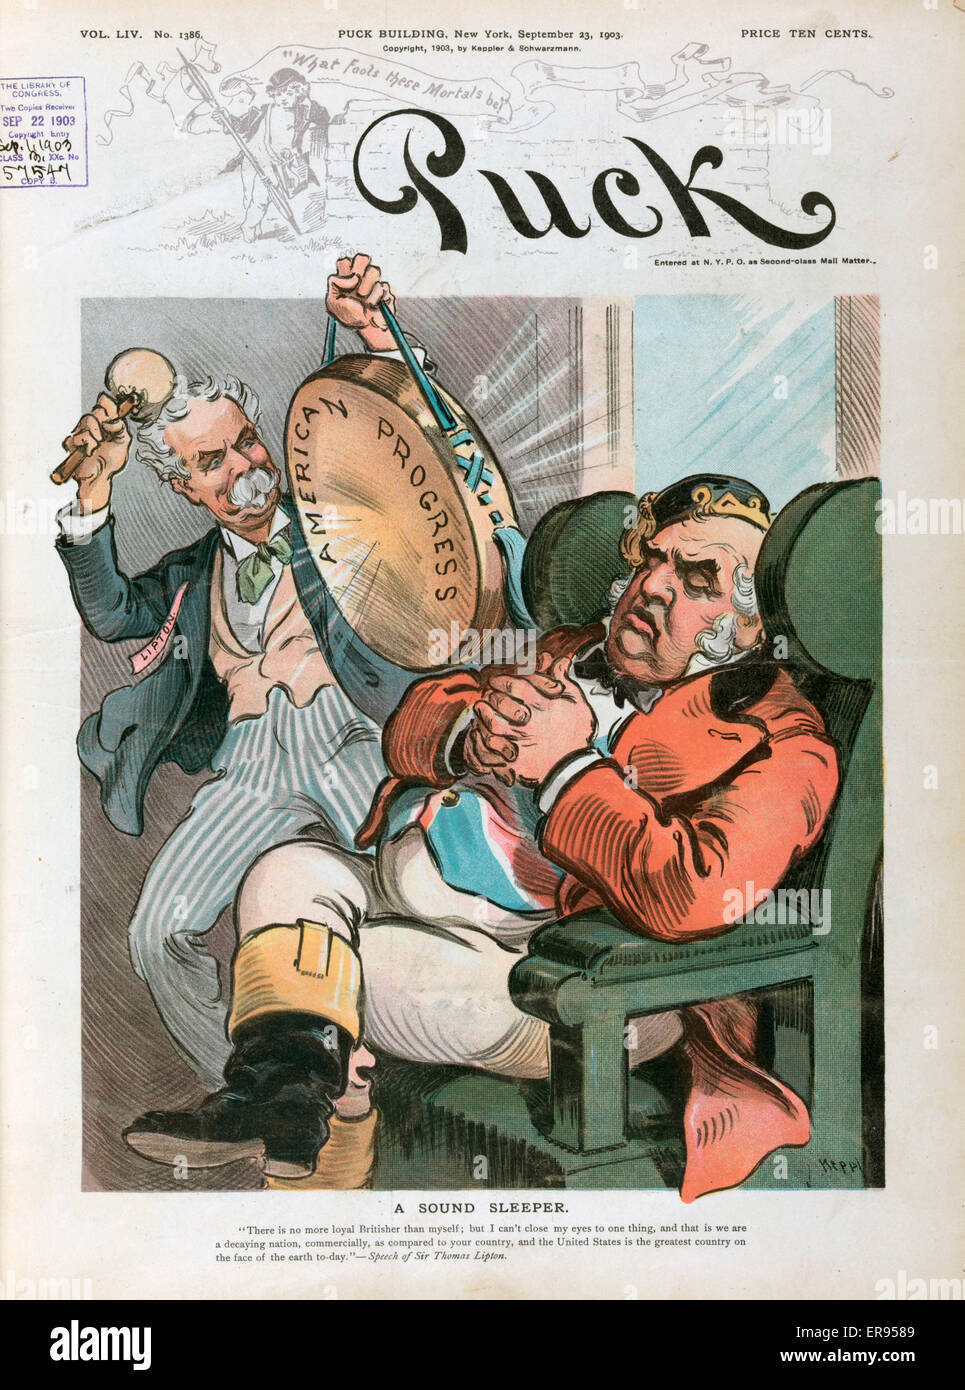 A sound sleeper. Illustration shows Sir Thomas Lipton beating a hand-drum labeled American Progress, trying to wake - Stock Image